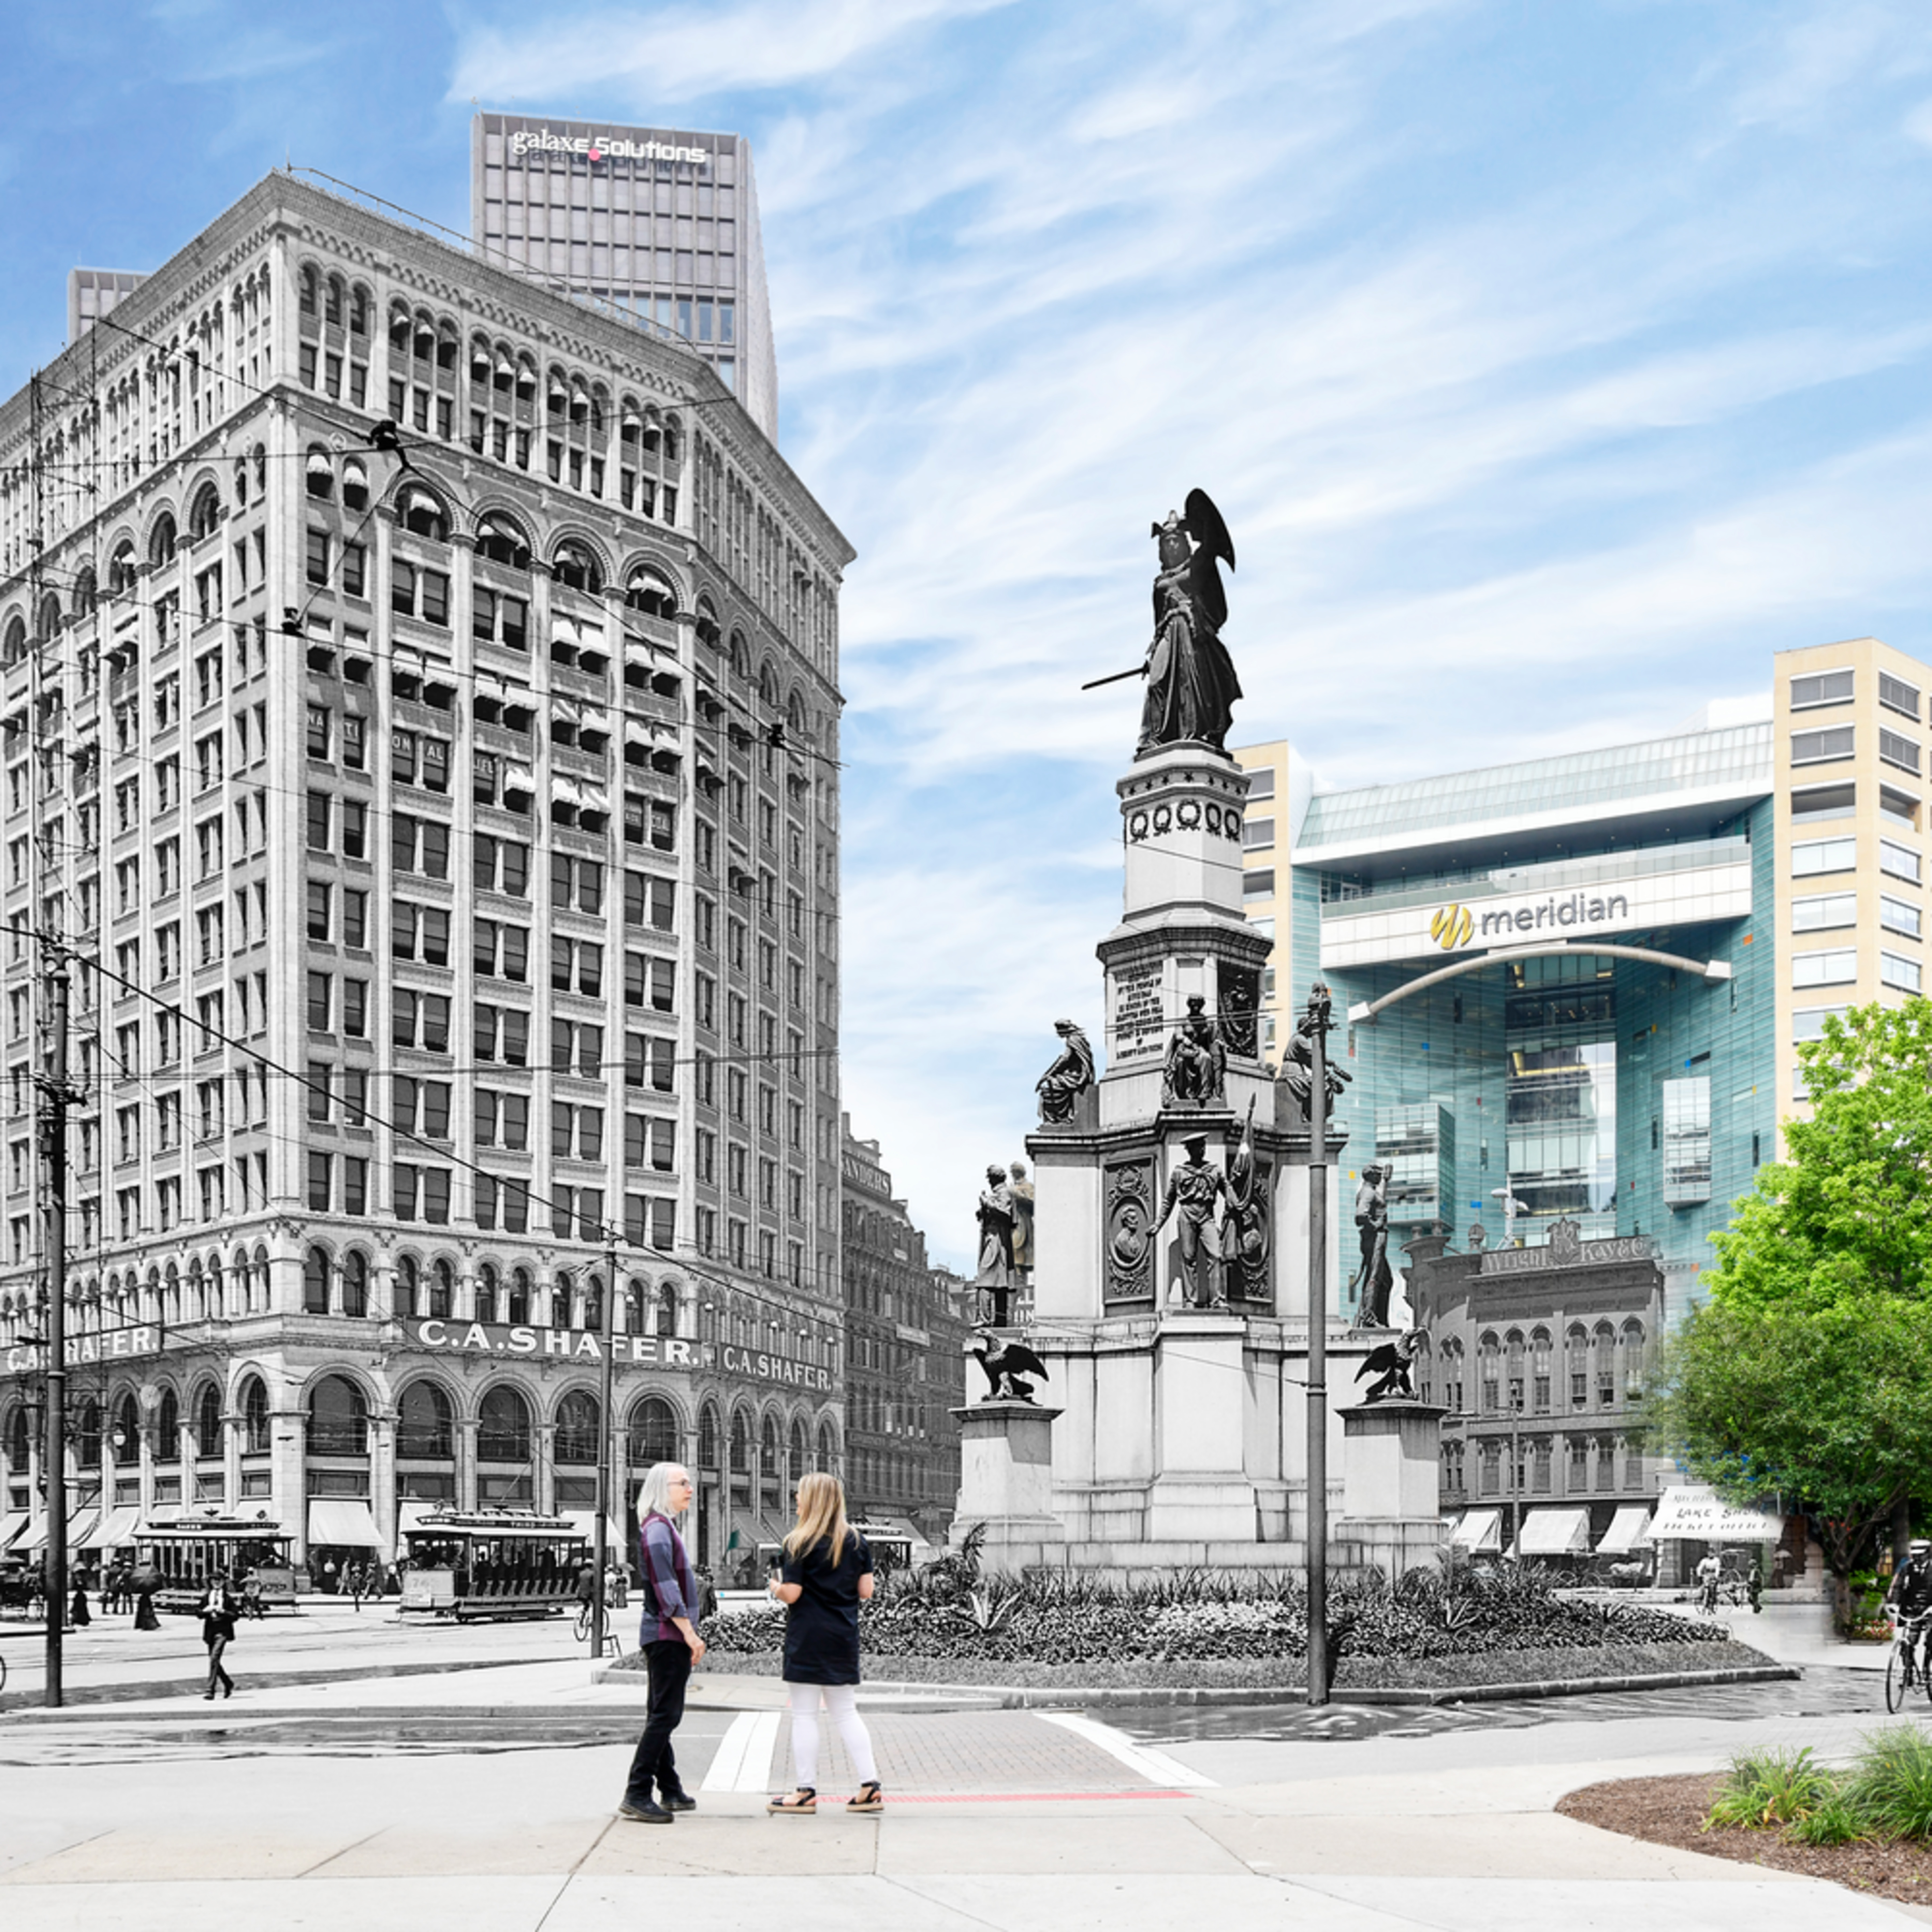 Soldiers and sailors monument dsc0098 30x24 w54hxd